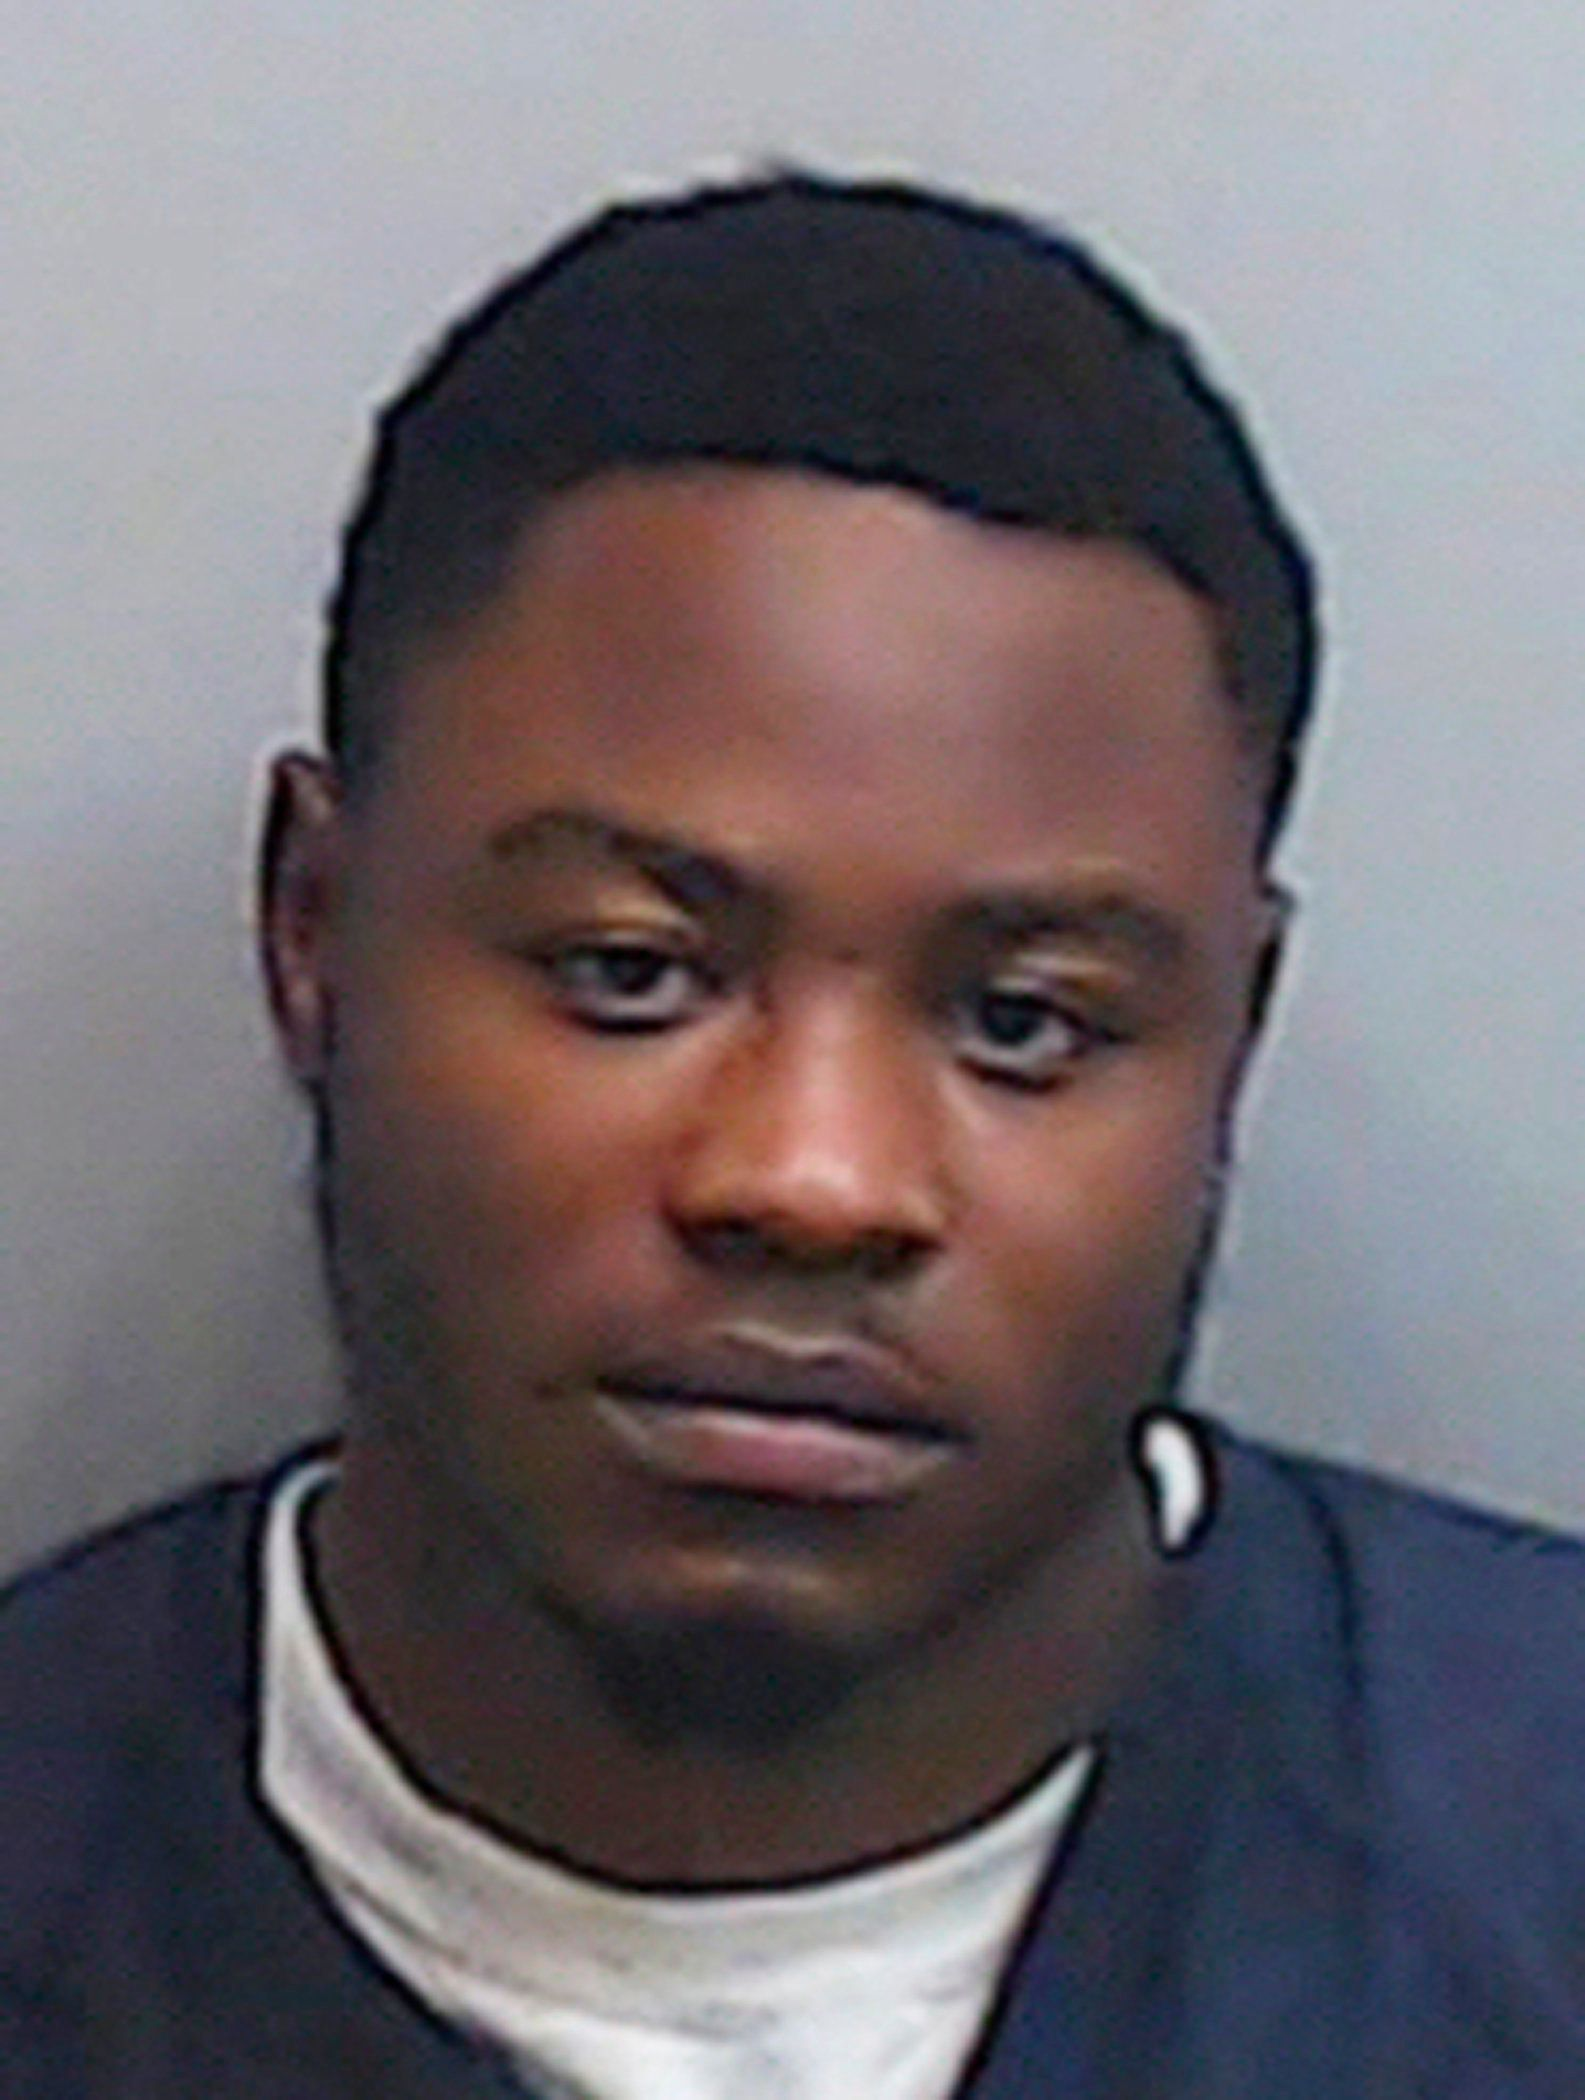 Erron Martez Dequan Brown, 20, is charged with attempted murder in the Nov. 22. 2018 shooting at the Riverchase Galleria in H